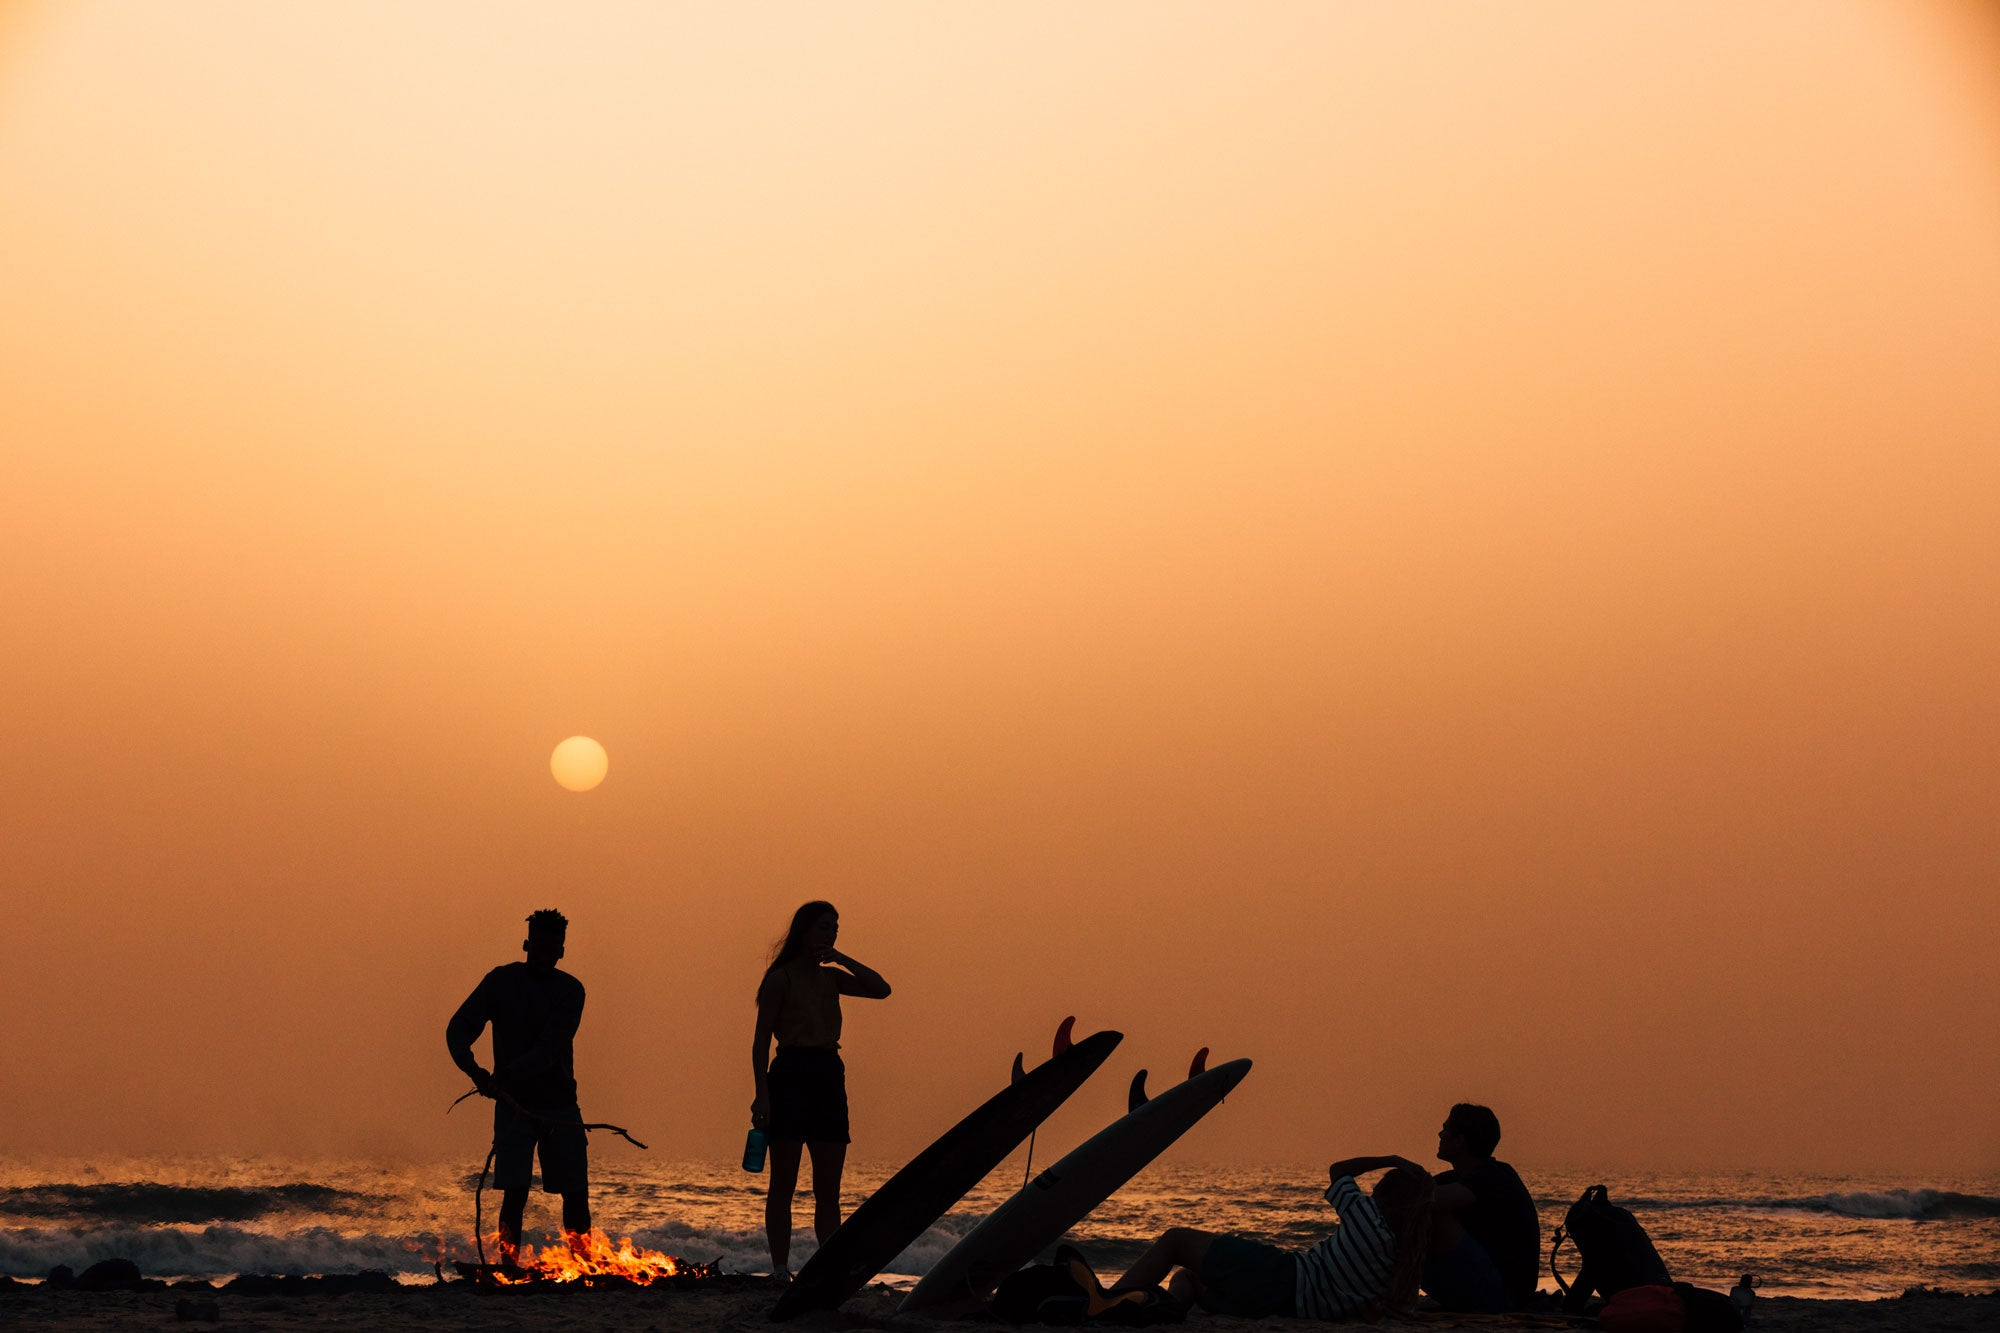 The-Finisterre-crew-relax-and-watch-the-sunset-after-a-full-day-session-in-Senegal